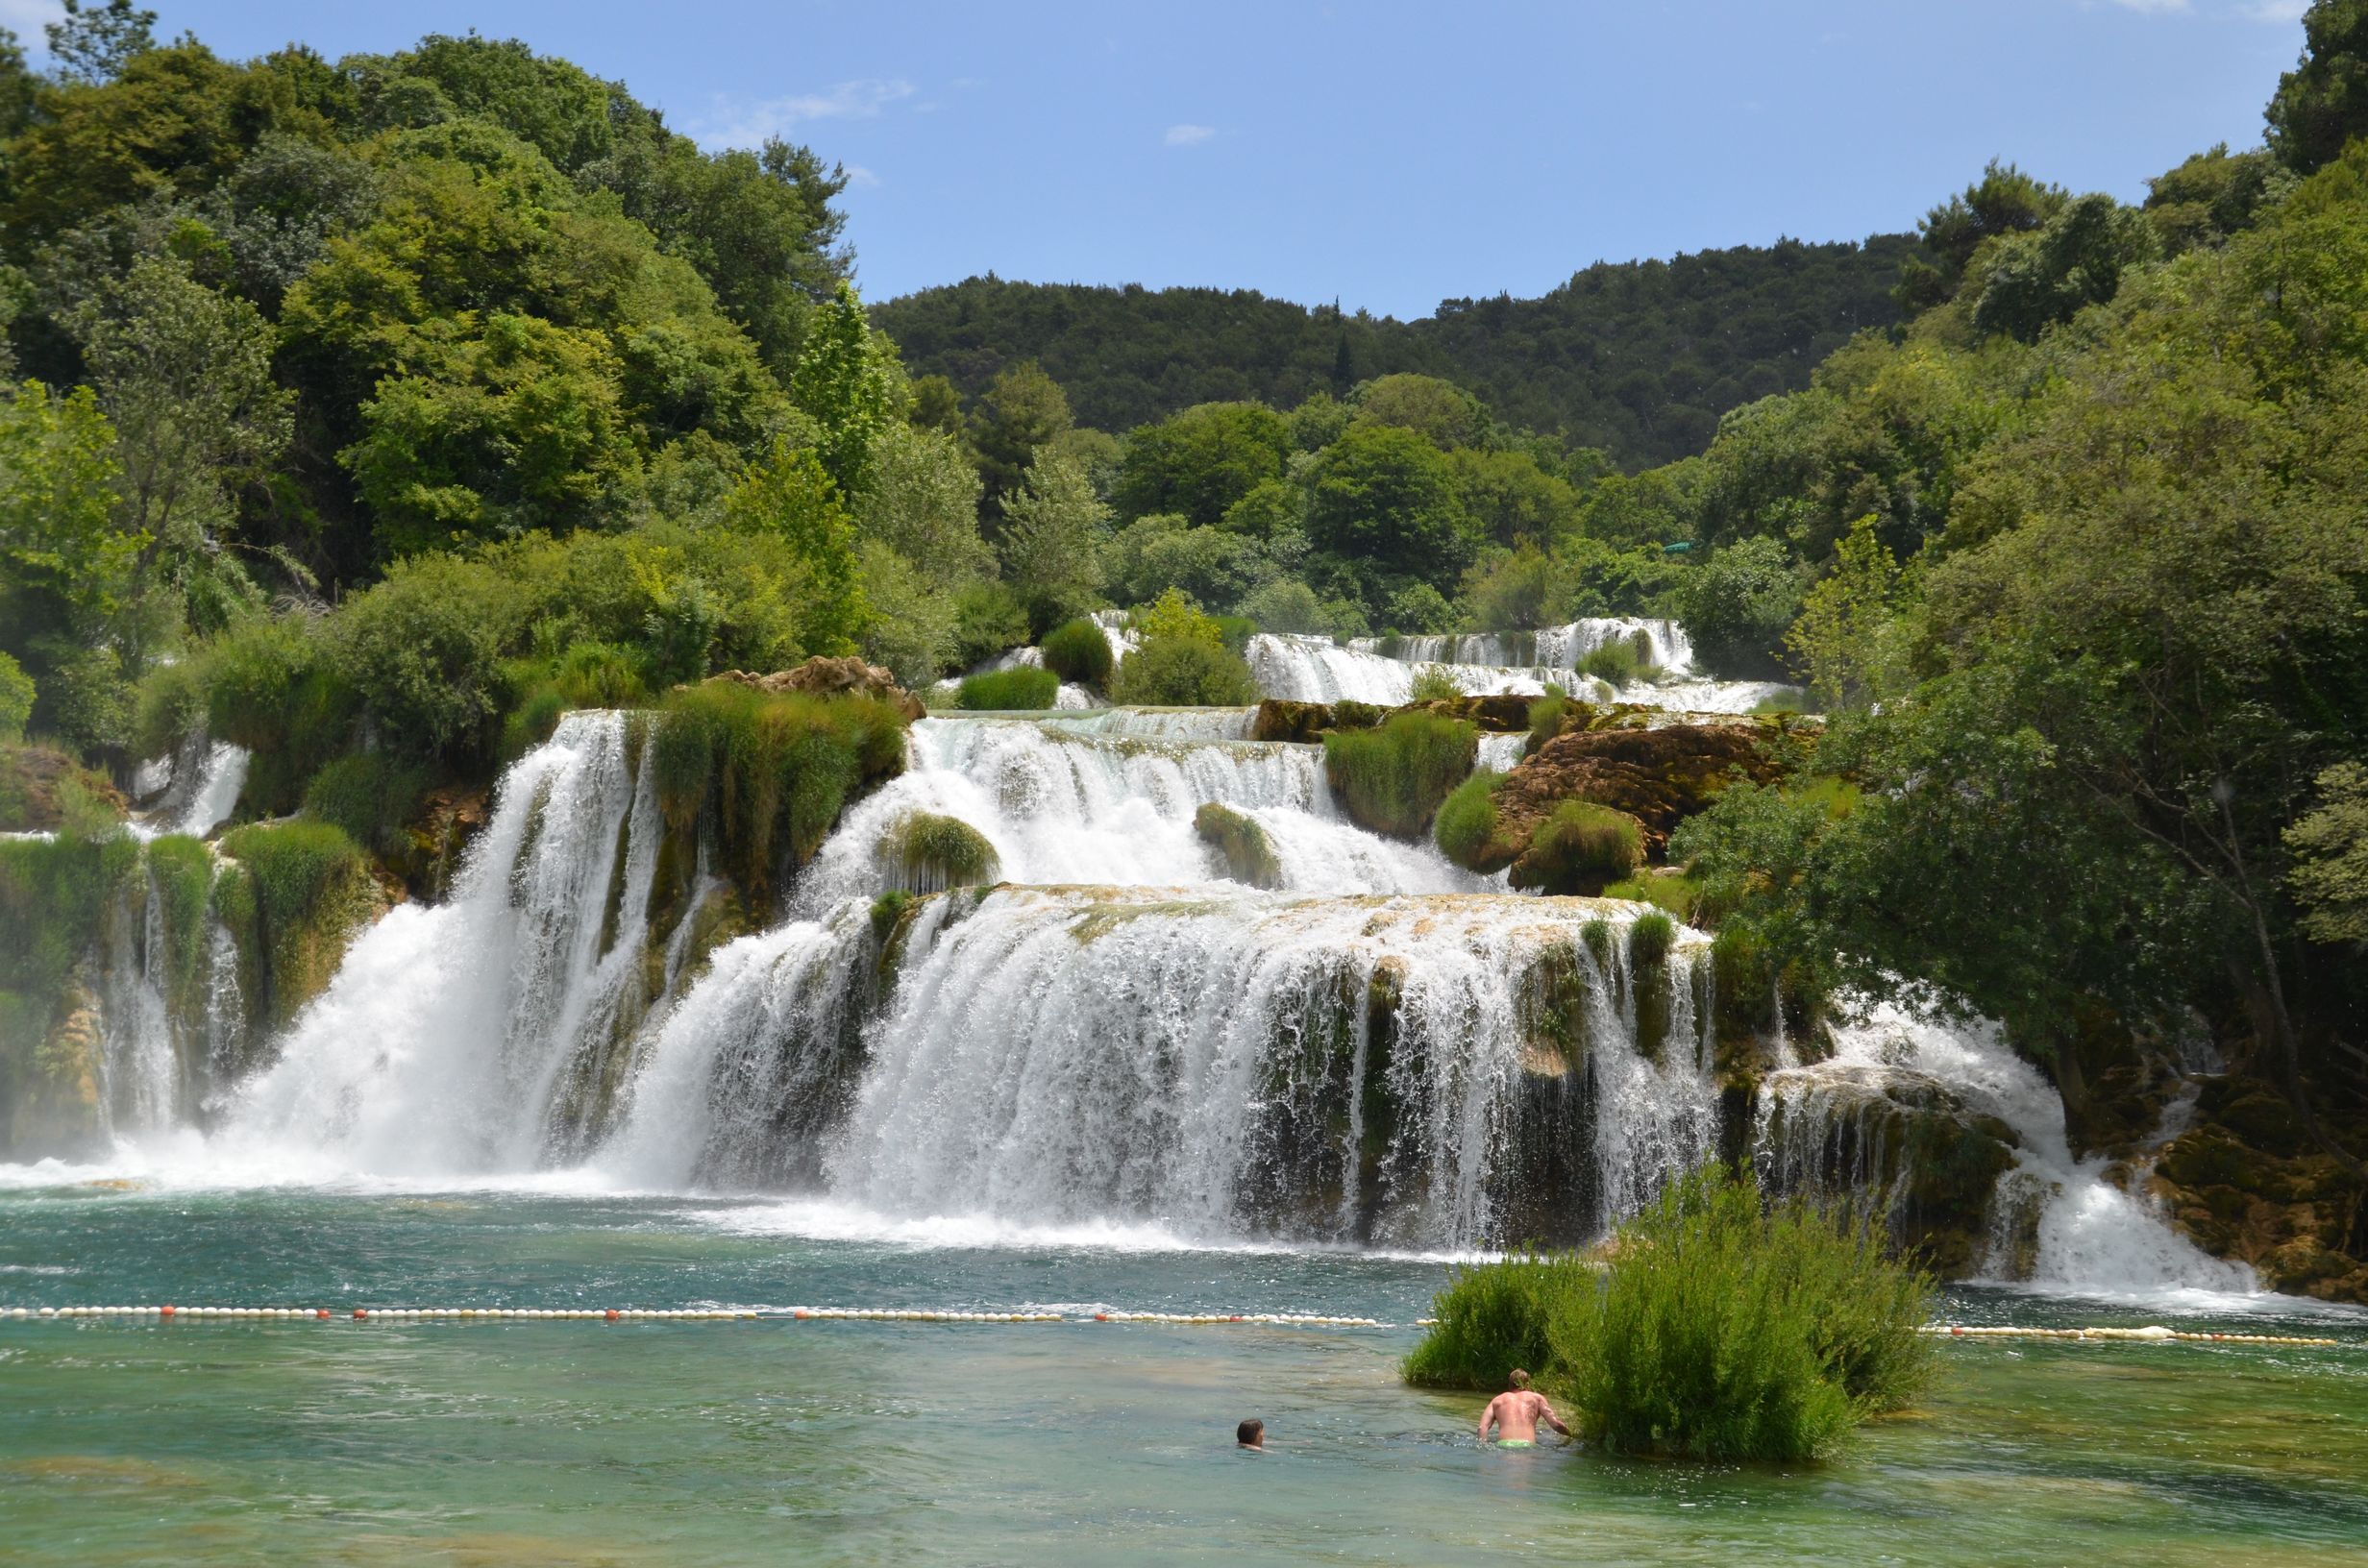 Carte, Tour d'Europe, Skradinski Buk, Parc national de Krka